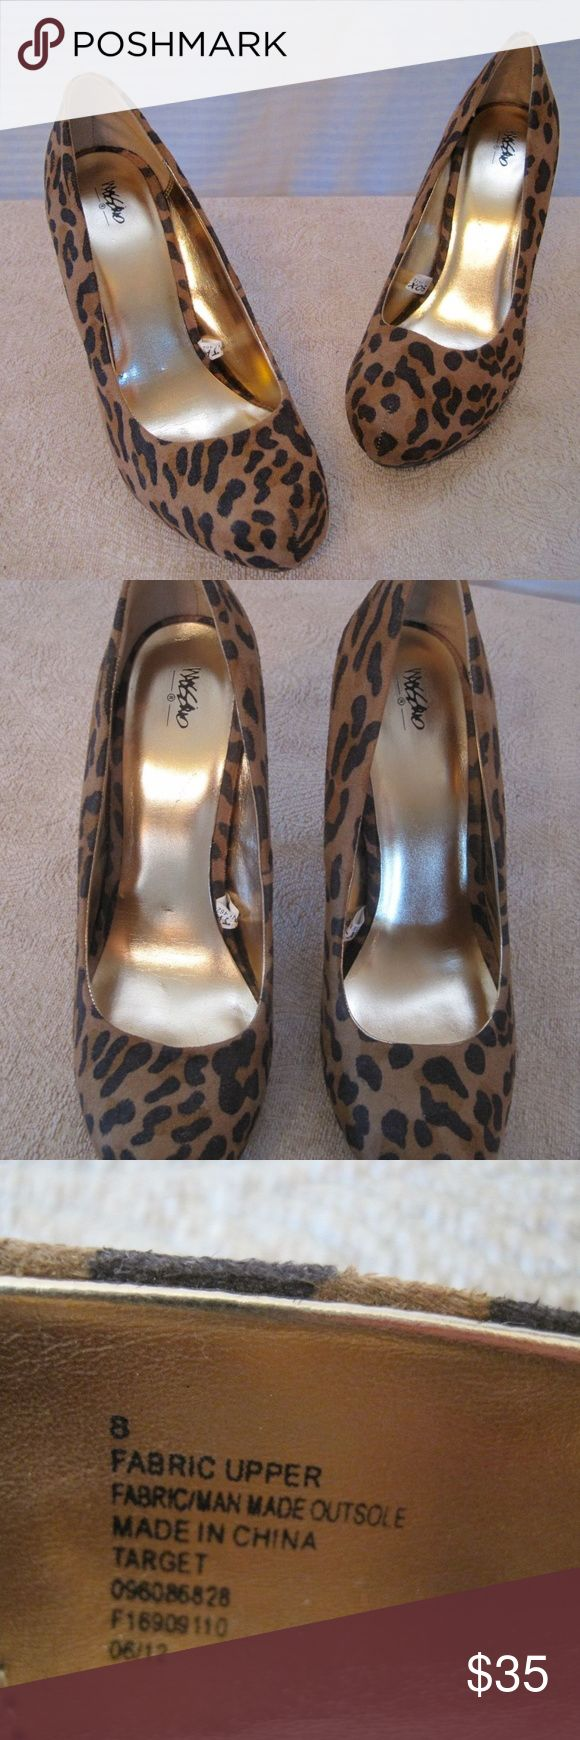 """Leopard Cheetah Animal Print 5"""" High Heel Shoes Women's Mossimo Leopard Cheetah Animal Print 5"""" High Heel Platform Shoes- Sz 8  Decent overall condition. Wear present on soles.  Measures approximately:   5"""" tall heel. Mossimo Supply Co. Shoes Platforms"""